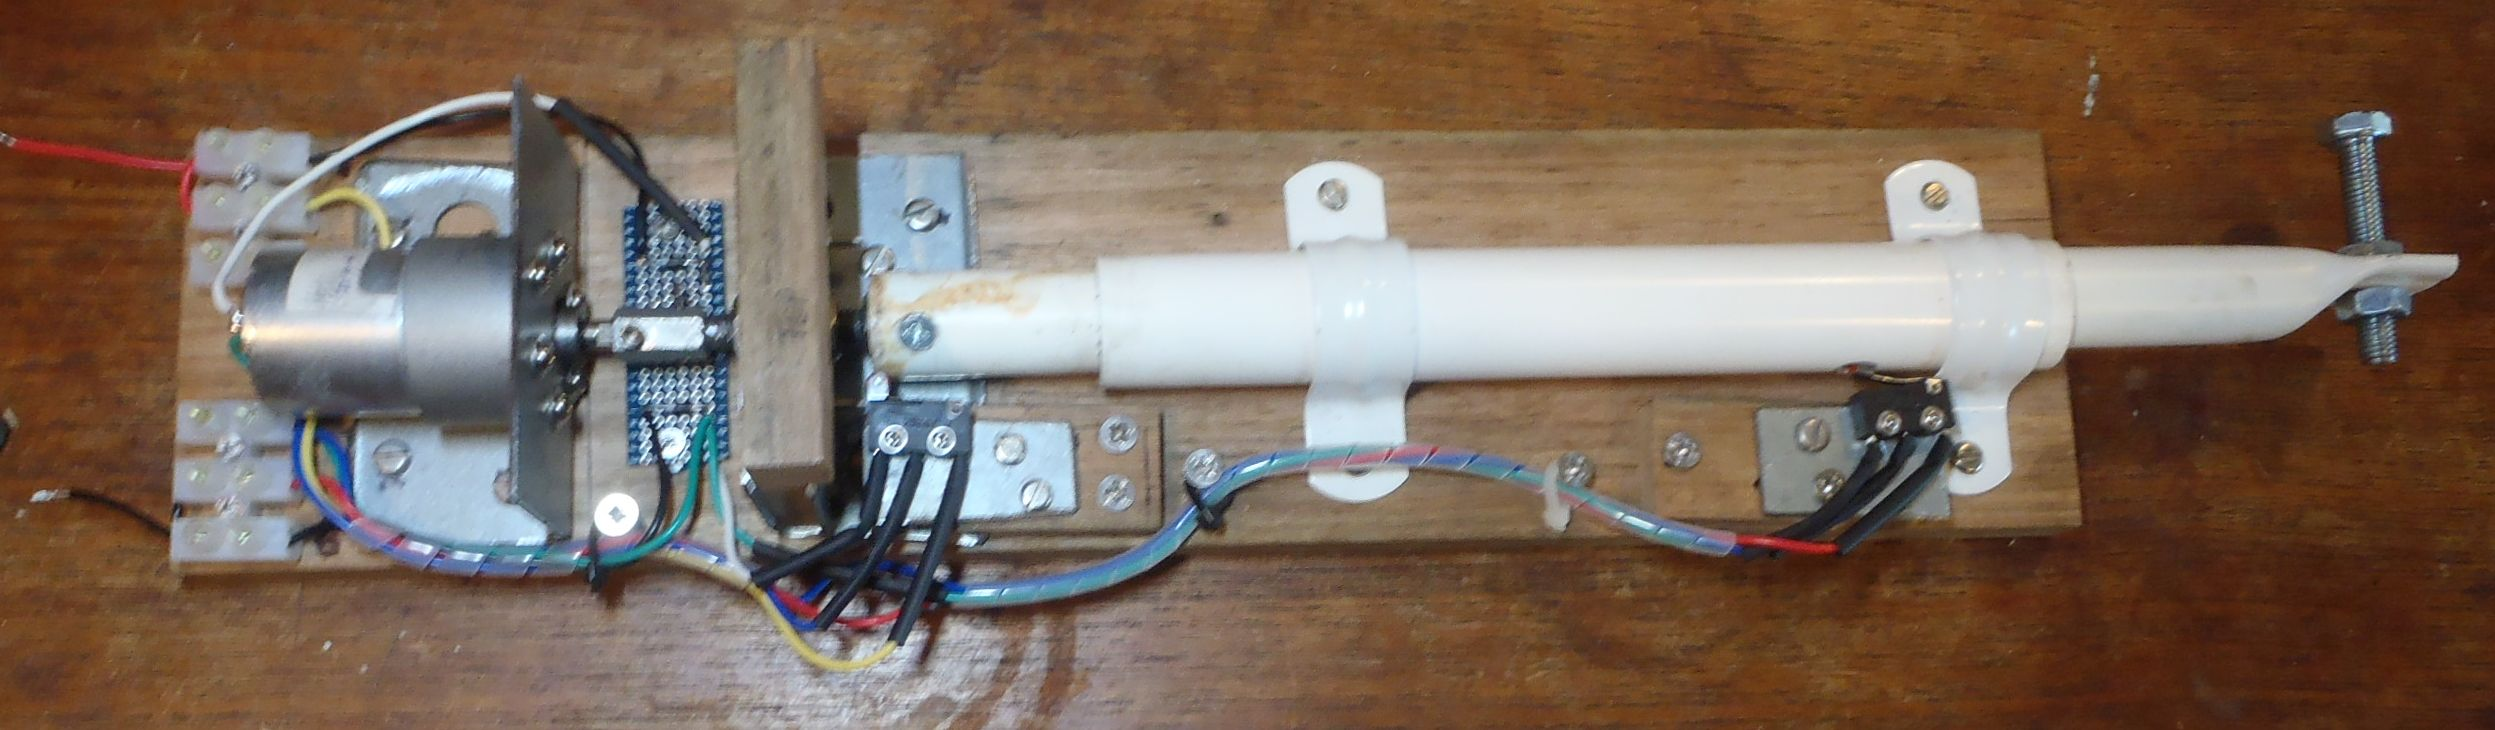 Picture of DIY Linear Actuator